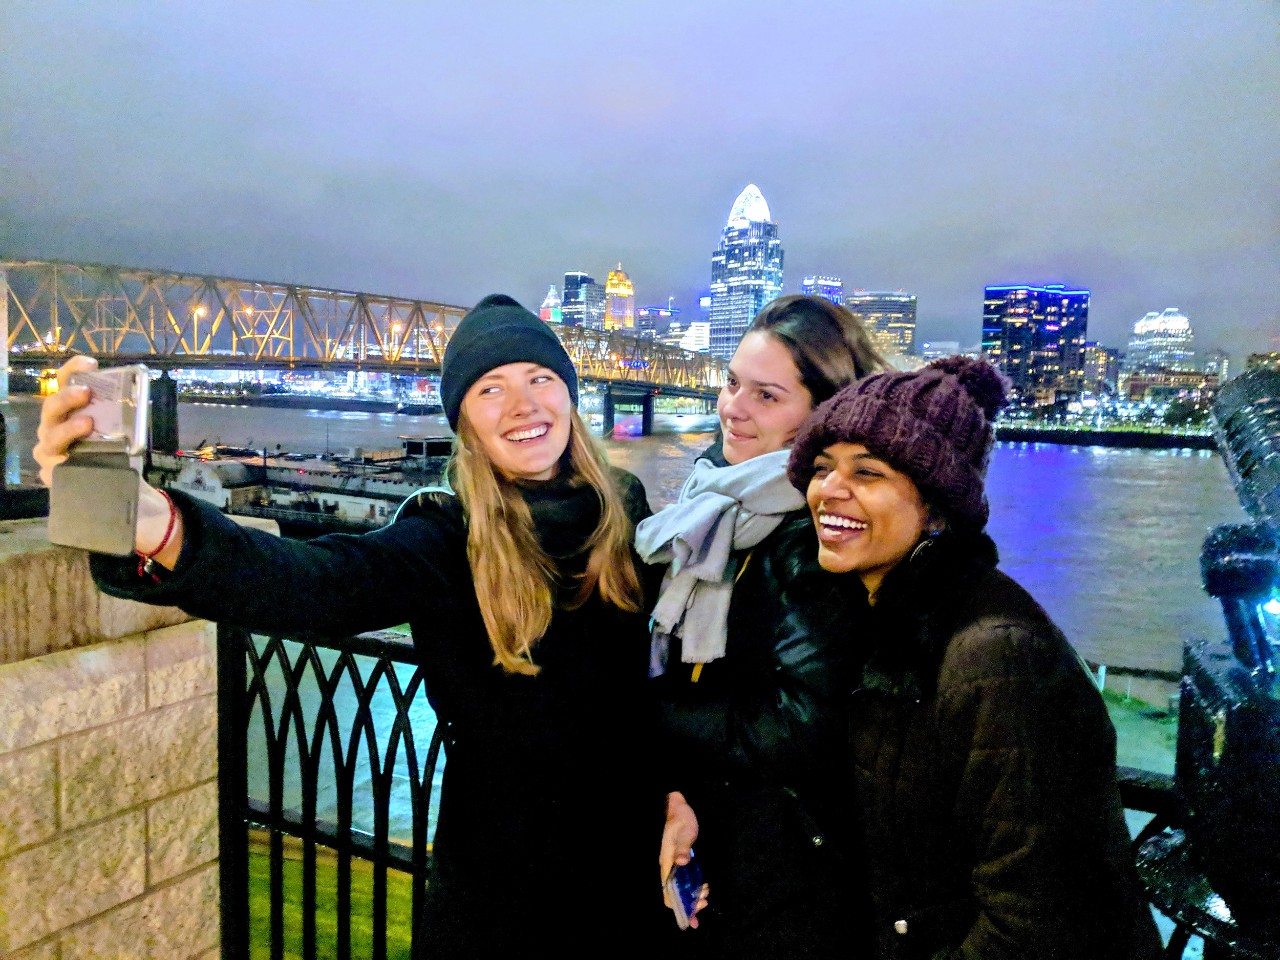 Thre women take selfies with the Cincinnati skyline in the background.